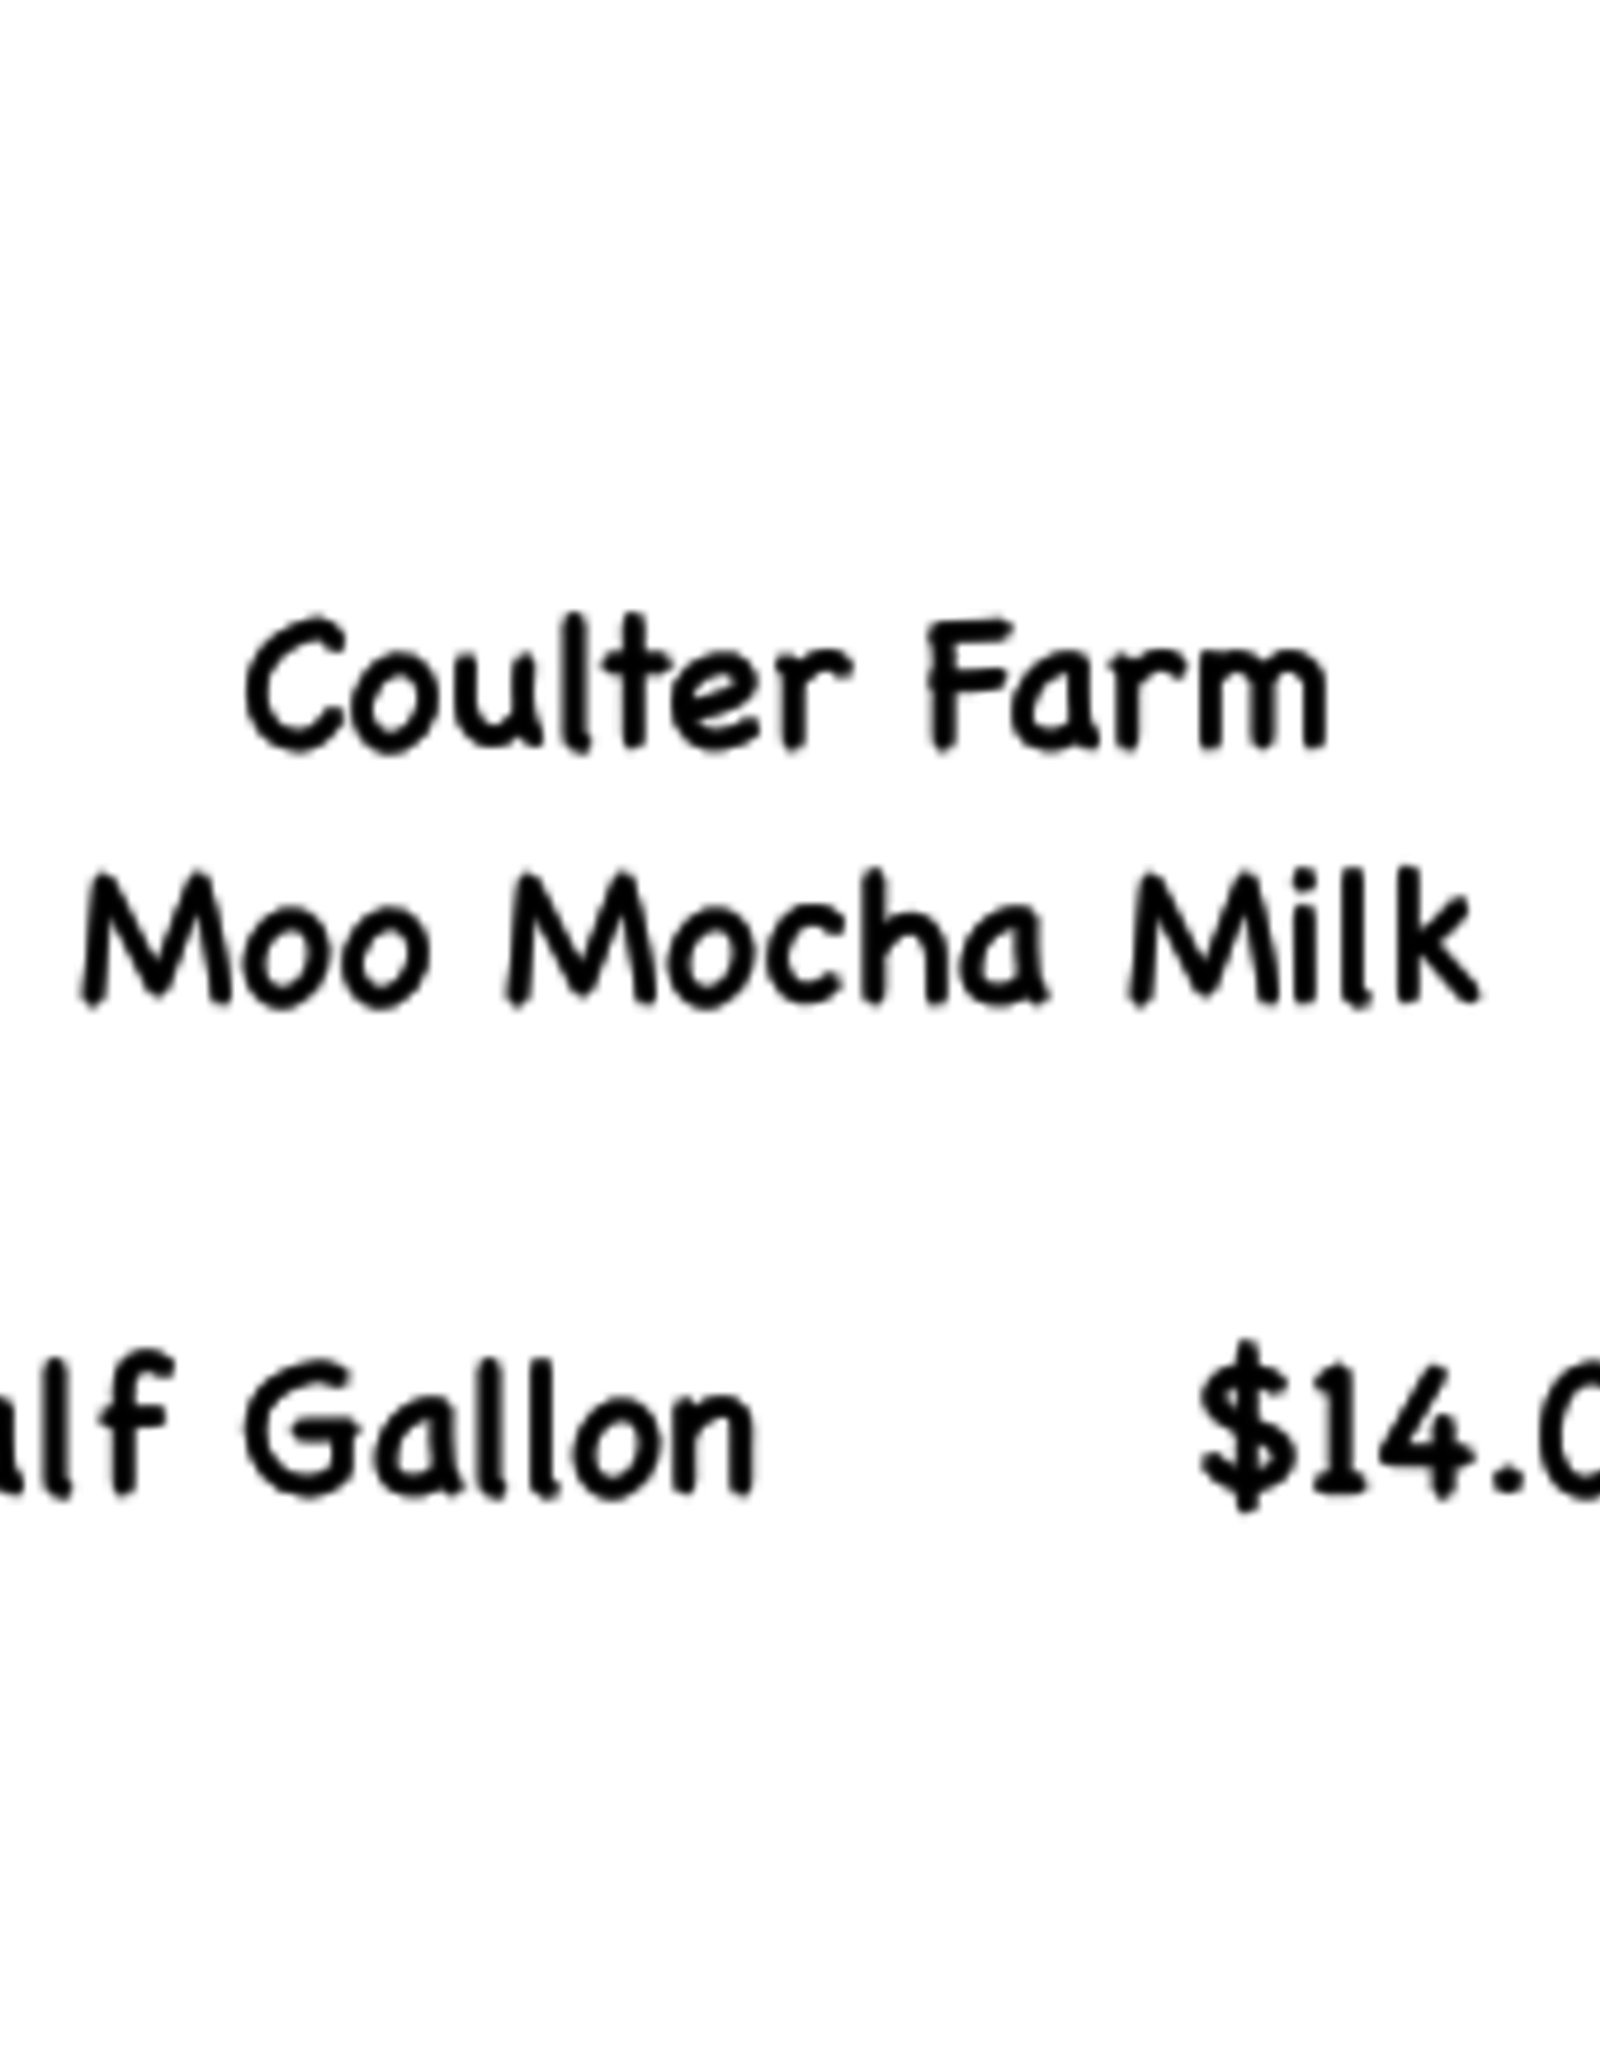 Coulter Farm Coulter Farm Moo Mocha Milk half gallon